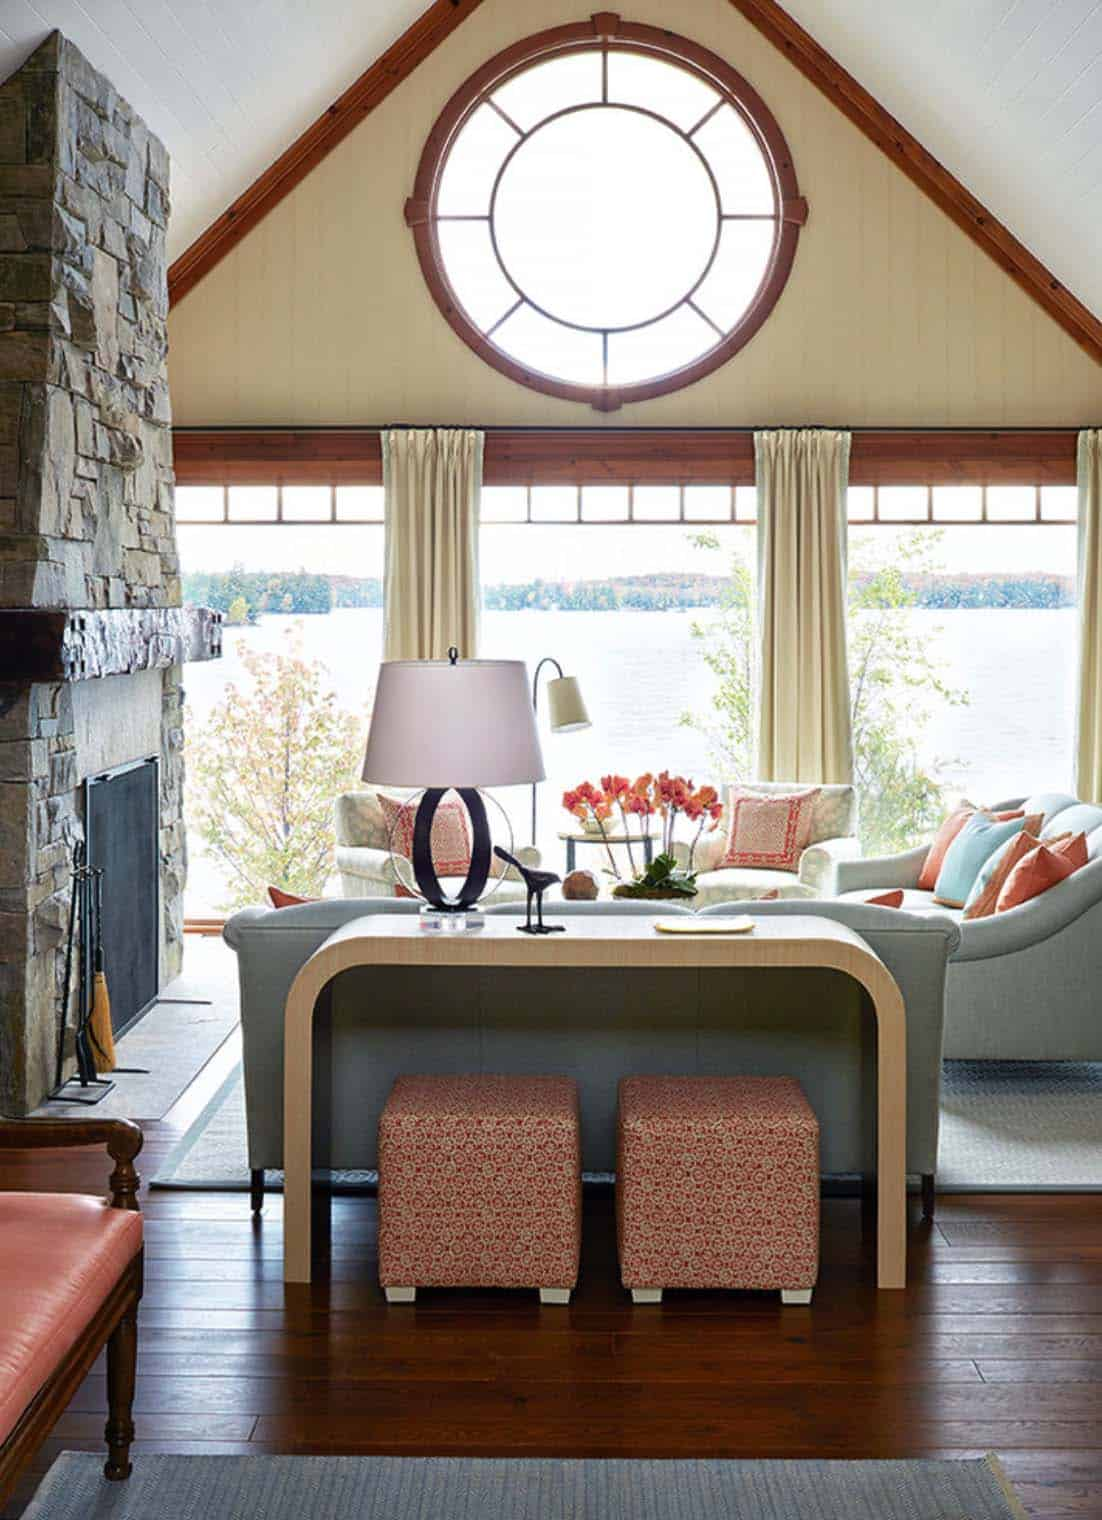 Muskoka Lake House-Anne Hepfer Designs-01-1 Kindesign